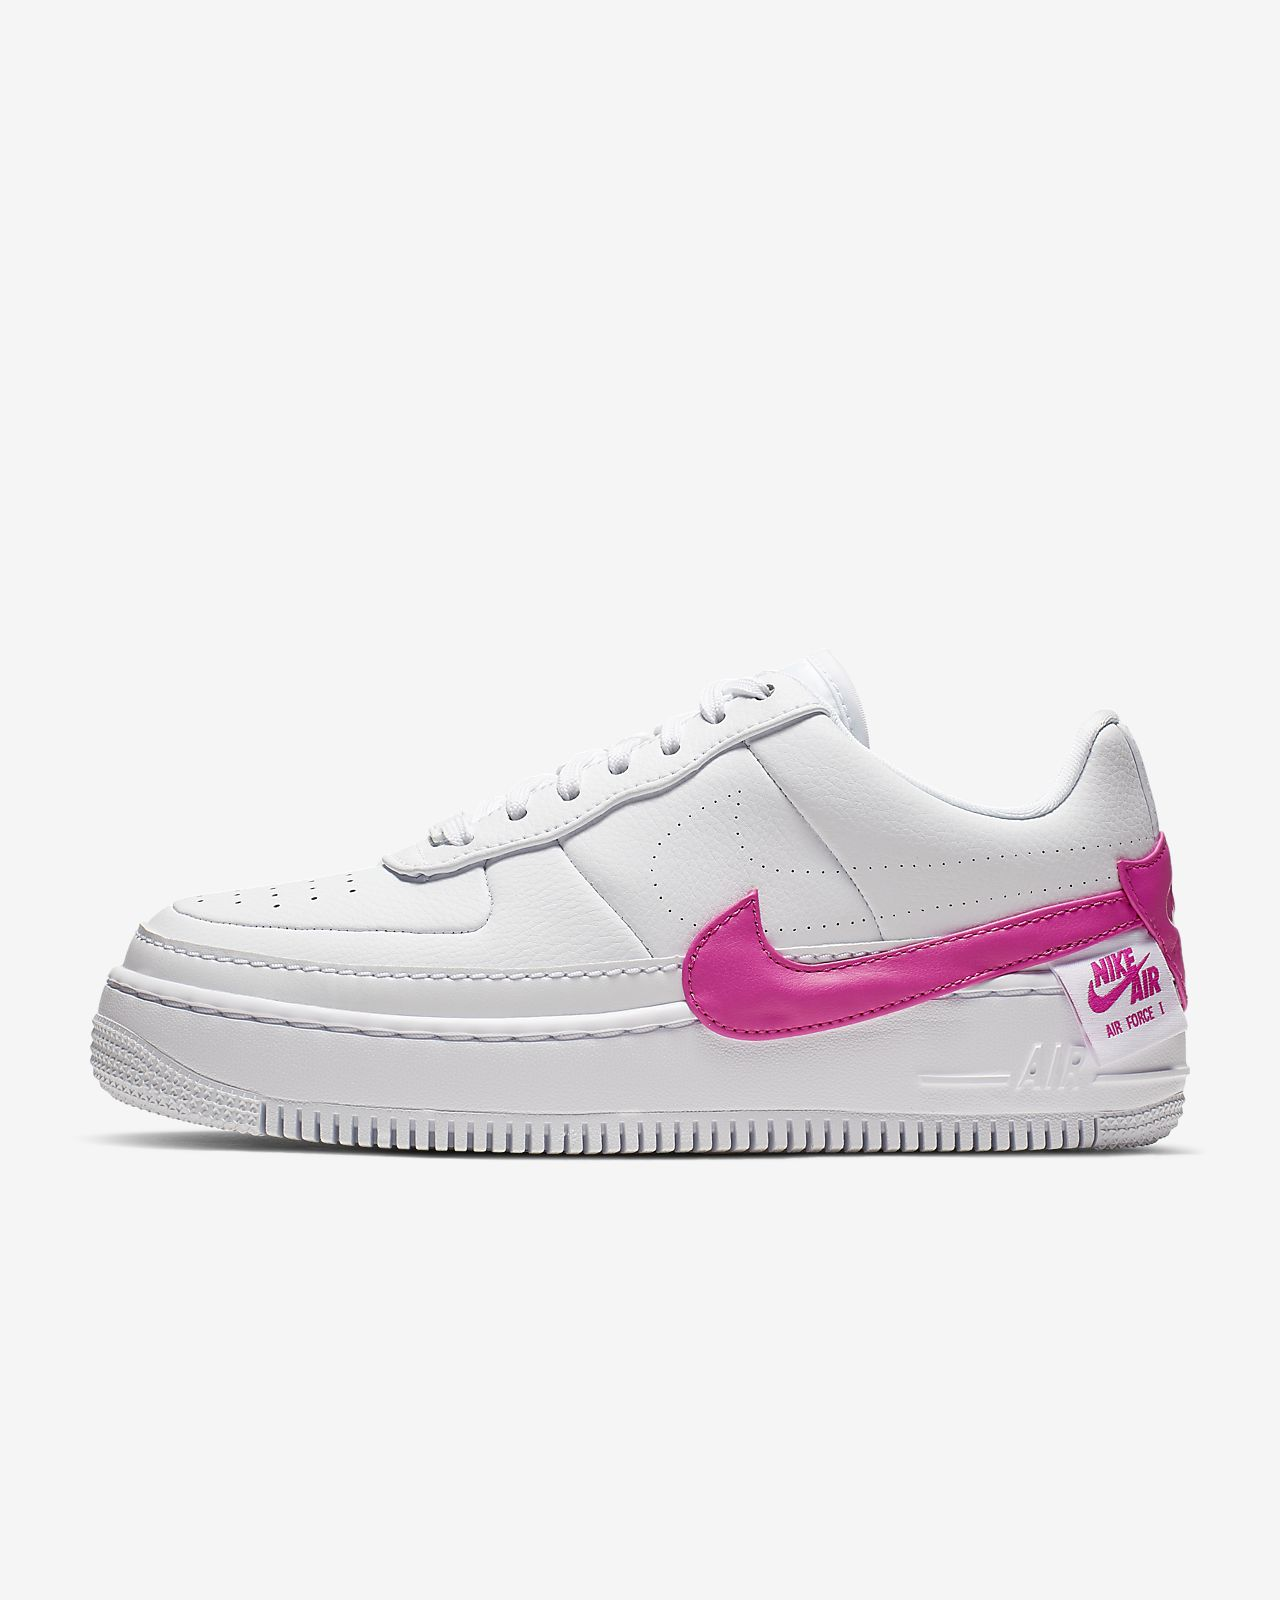 4daee3a88c Nike Air Force 1 Jester XX Shoe. Nike.com GB